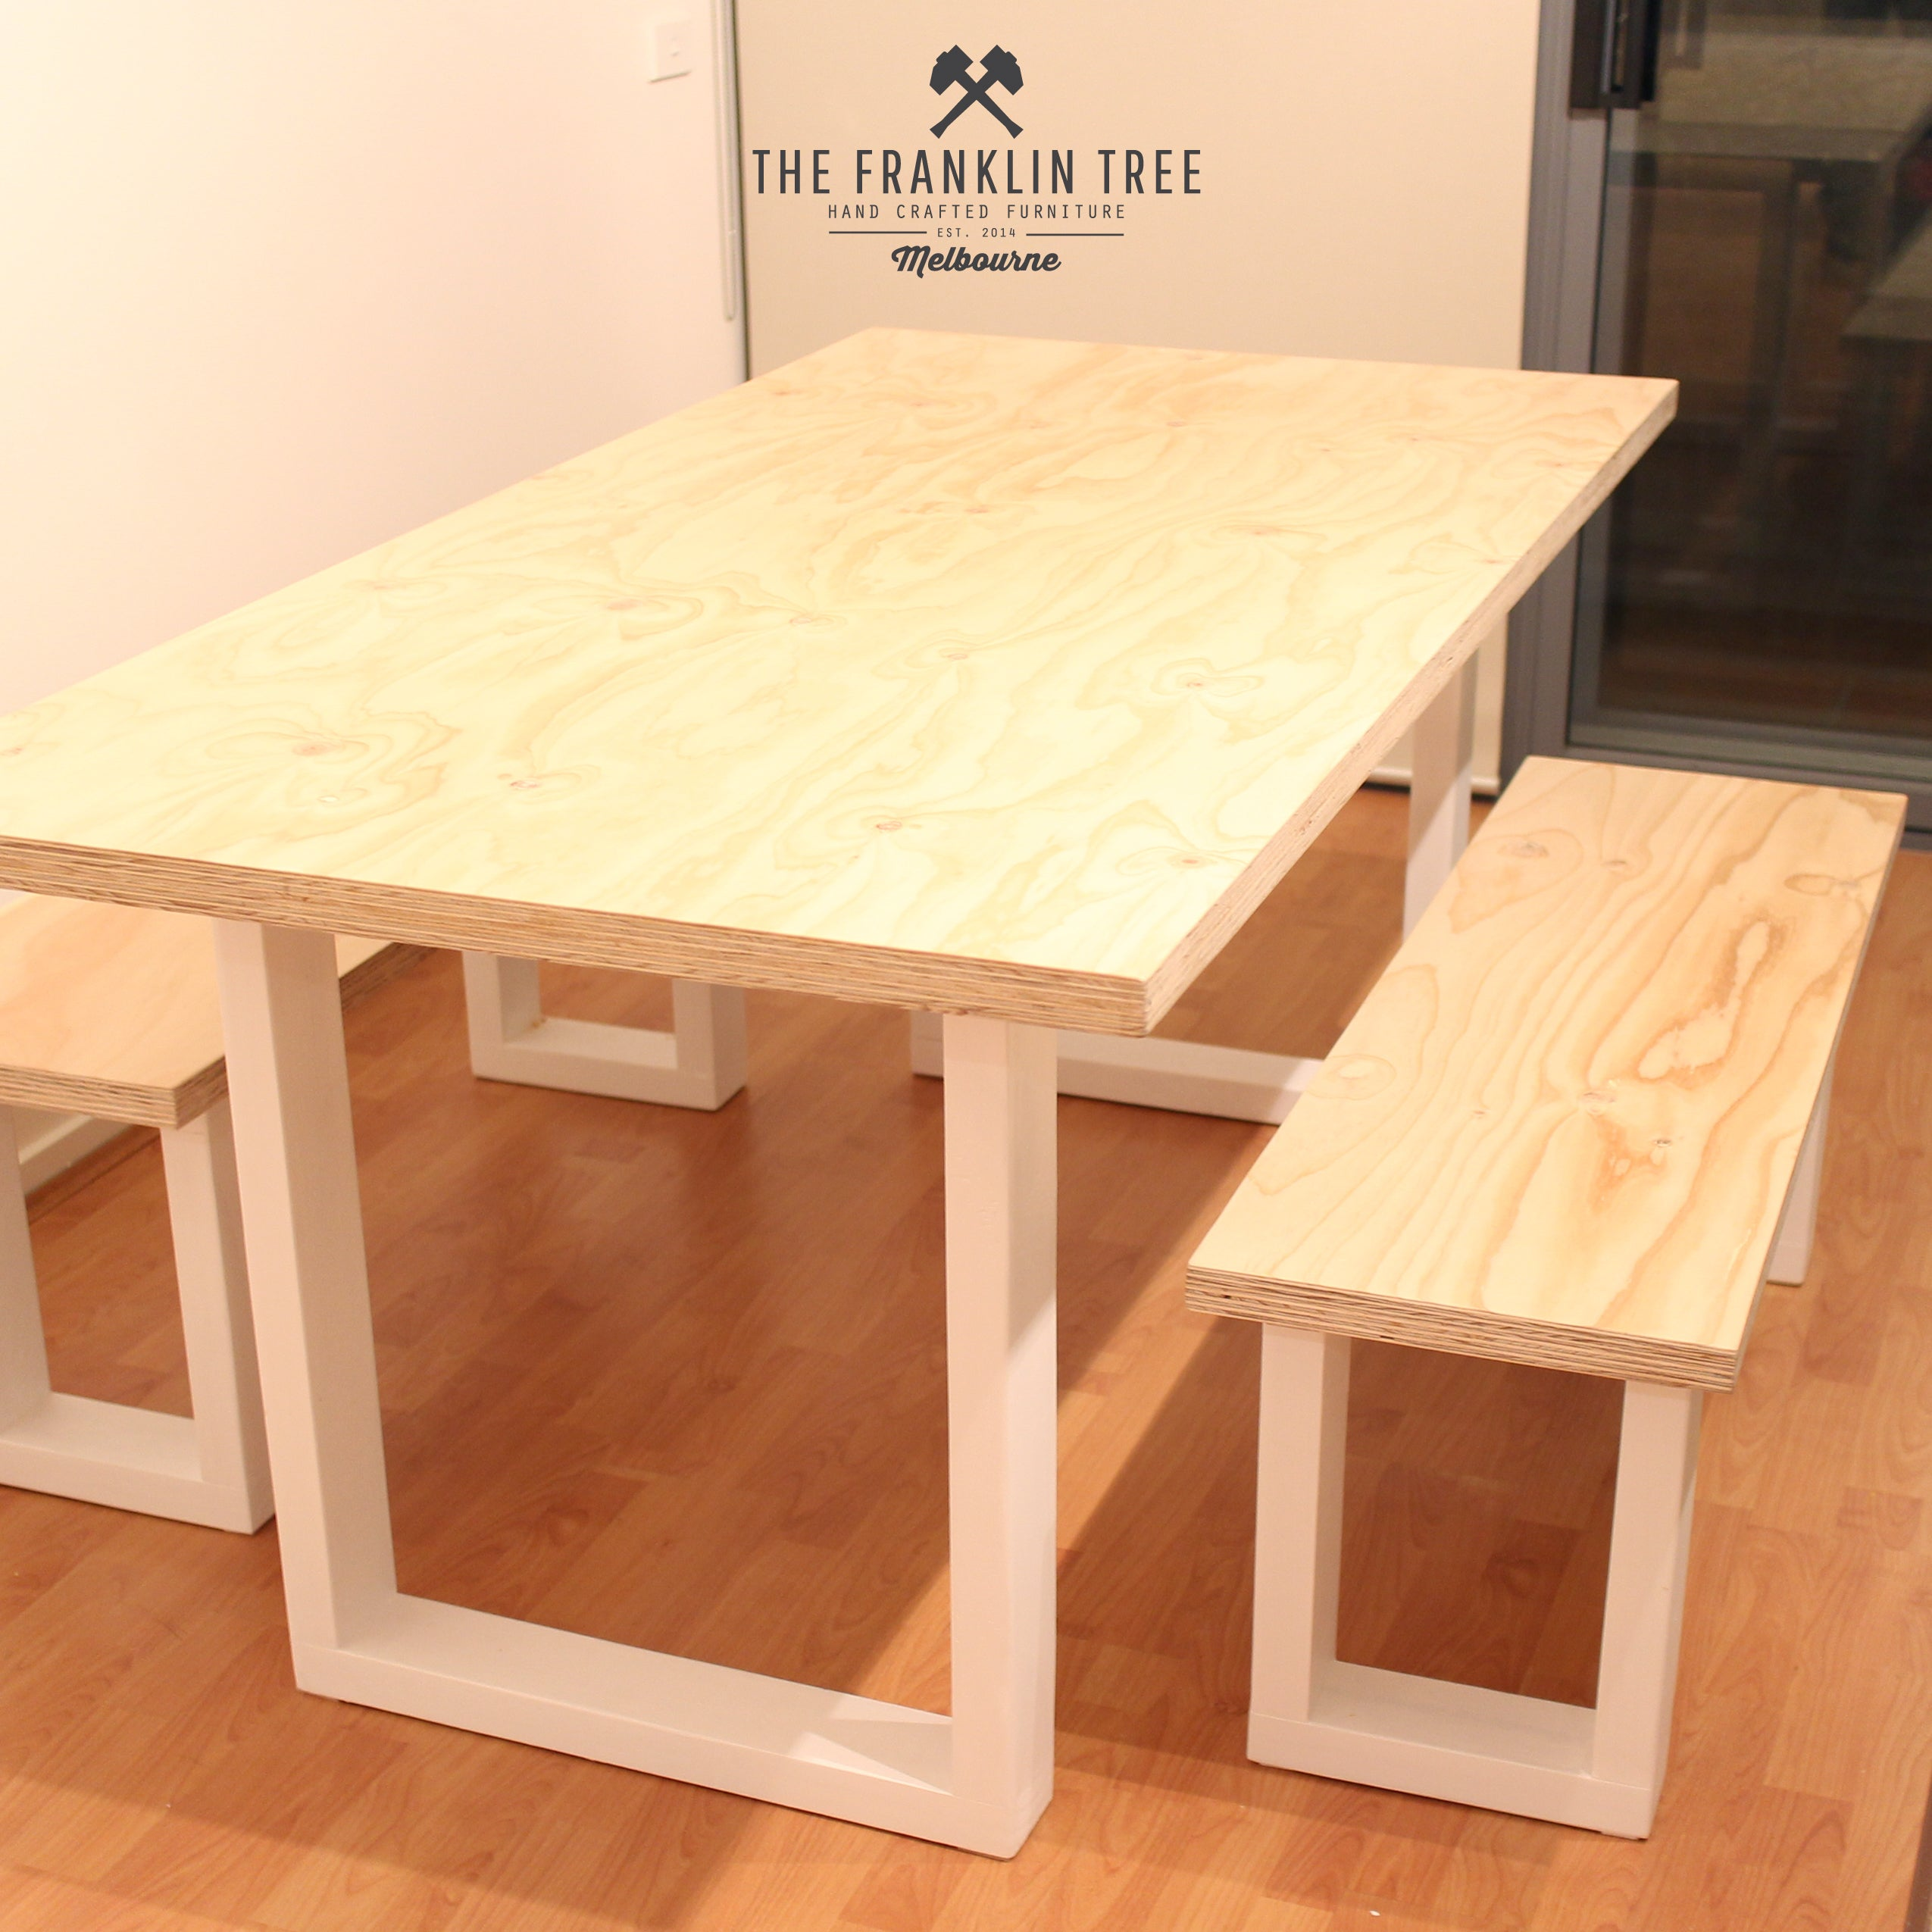 Thefranklintree Williamsburg Dining Table Plywood : T2 from www.thefranklintree.com size 1500 x 1500 jpeg 203kB